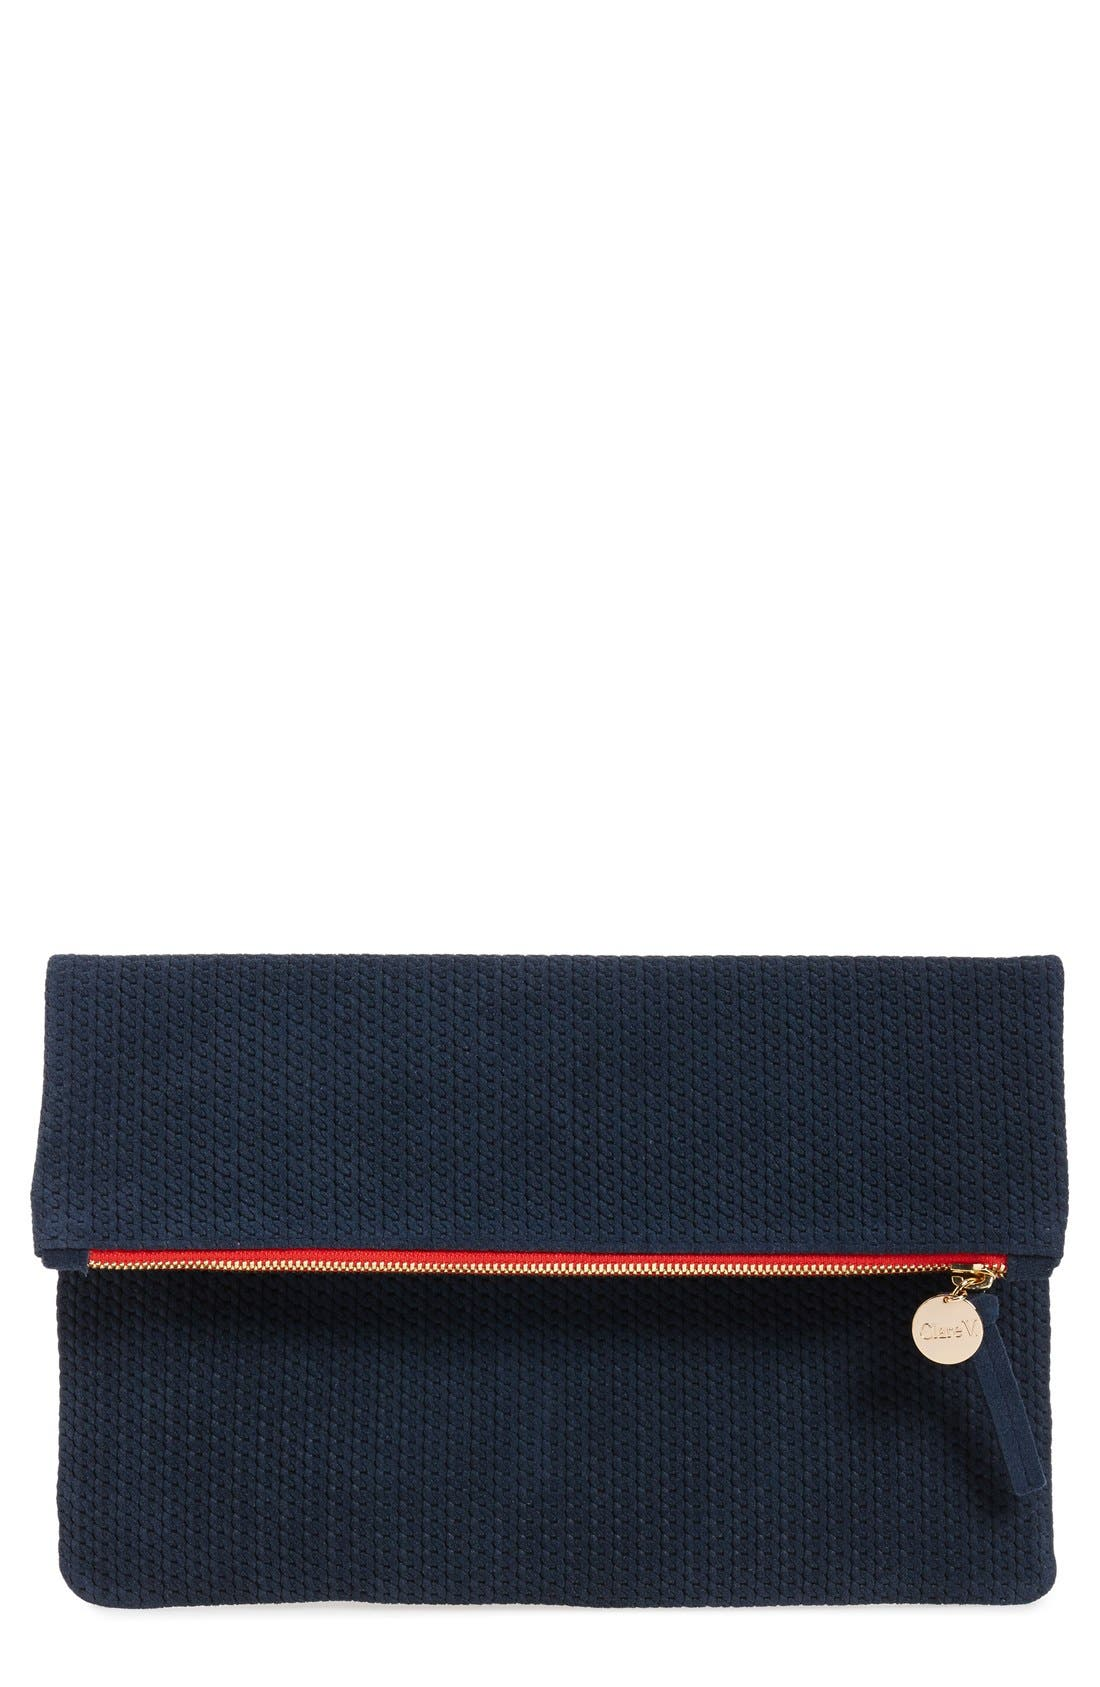 Alternate Image 1 Selected - Clare V. 'Marine Rope' Woven Suede Foldover Clutch